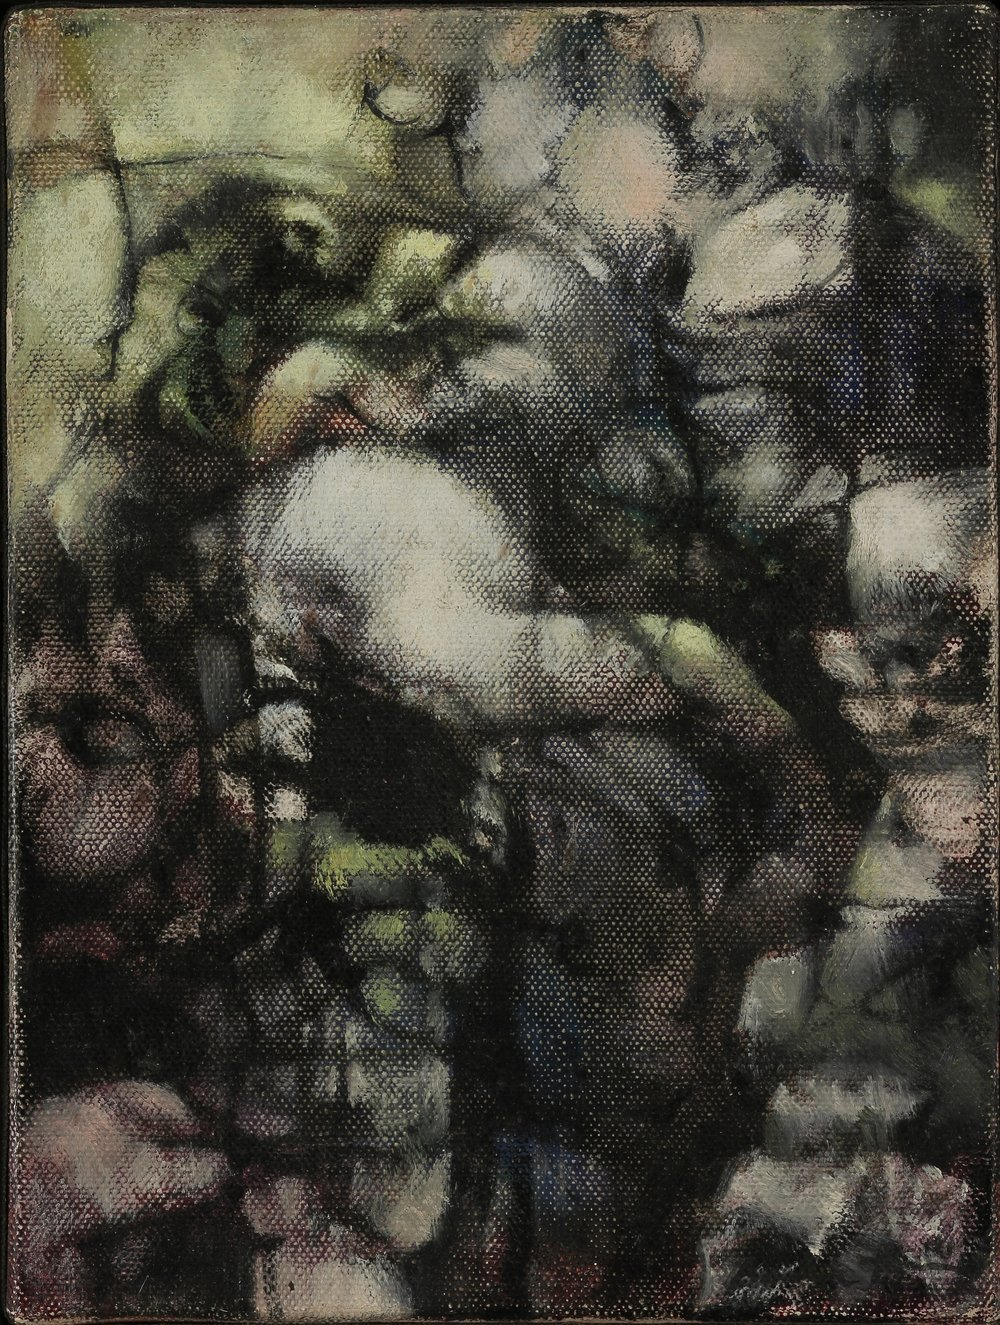 Dorothea Tanning,  Untitled , 1960, Oil on canvas, 6 x 5 inches (15 x 13 cm)